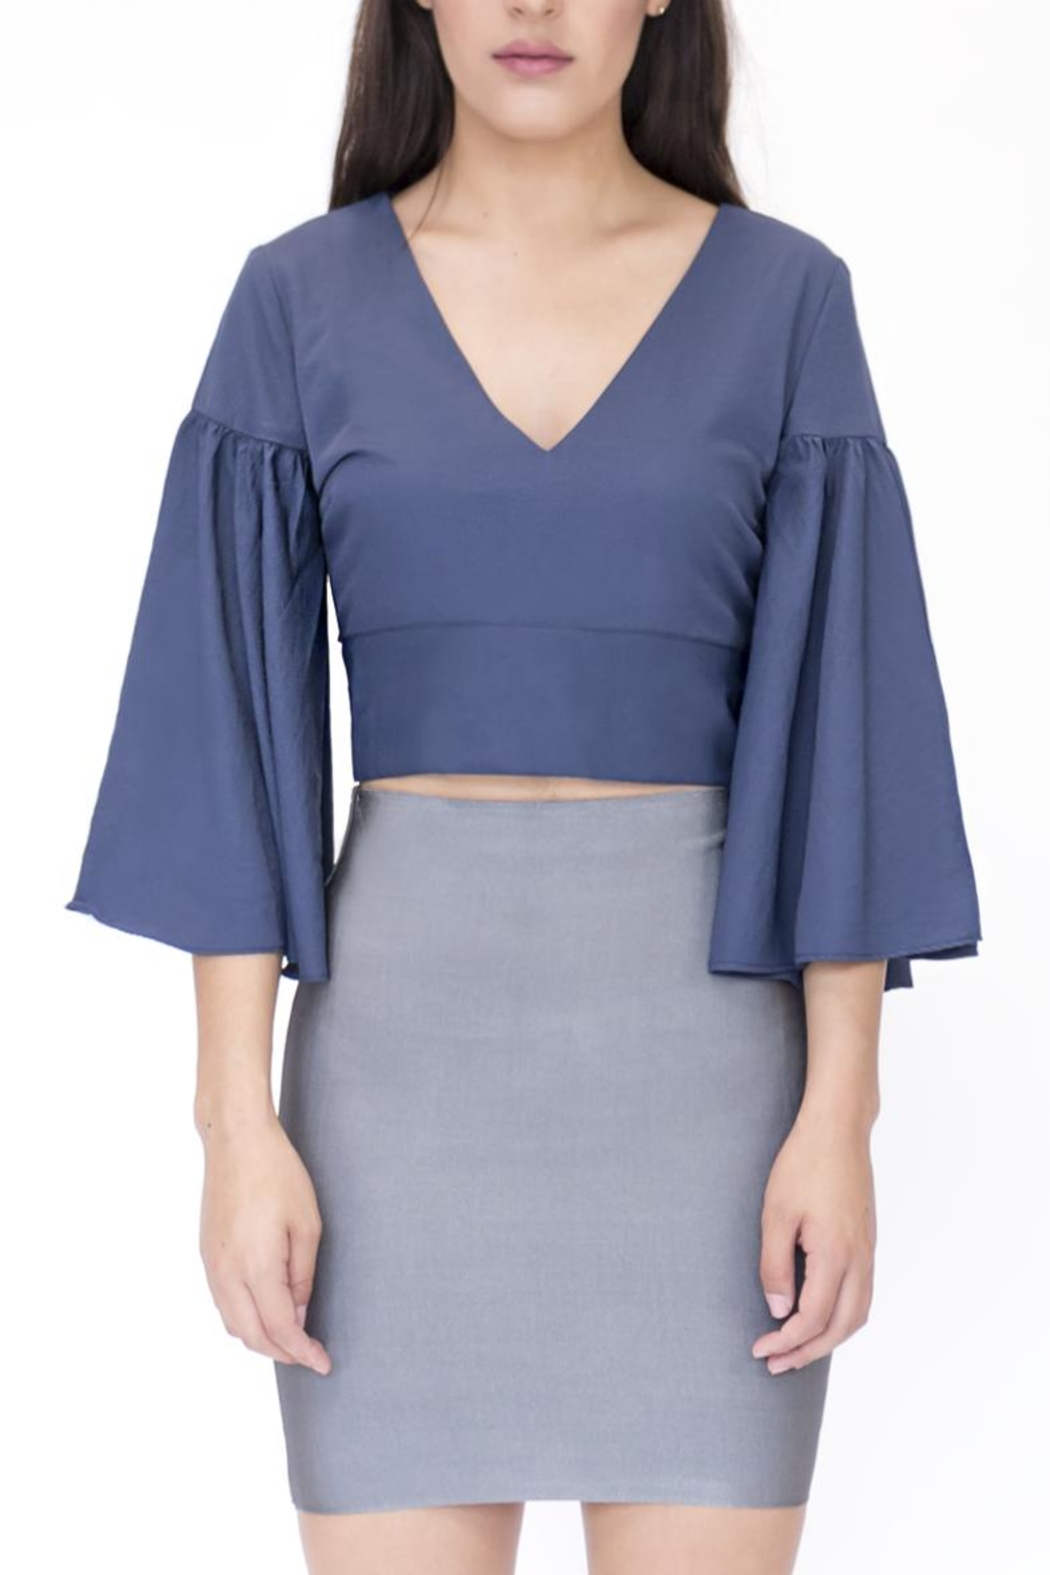 essue Top Flared Sleeve Top - Main Image